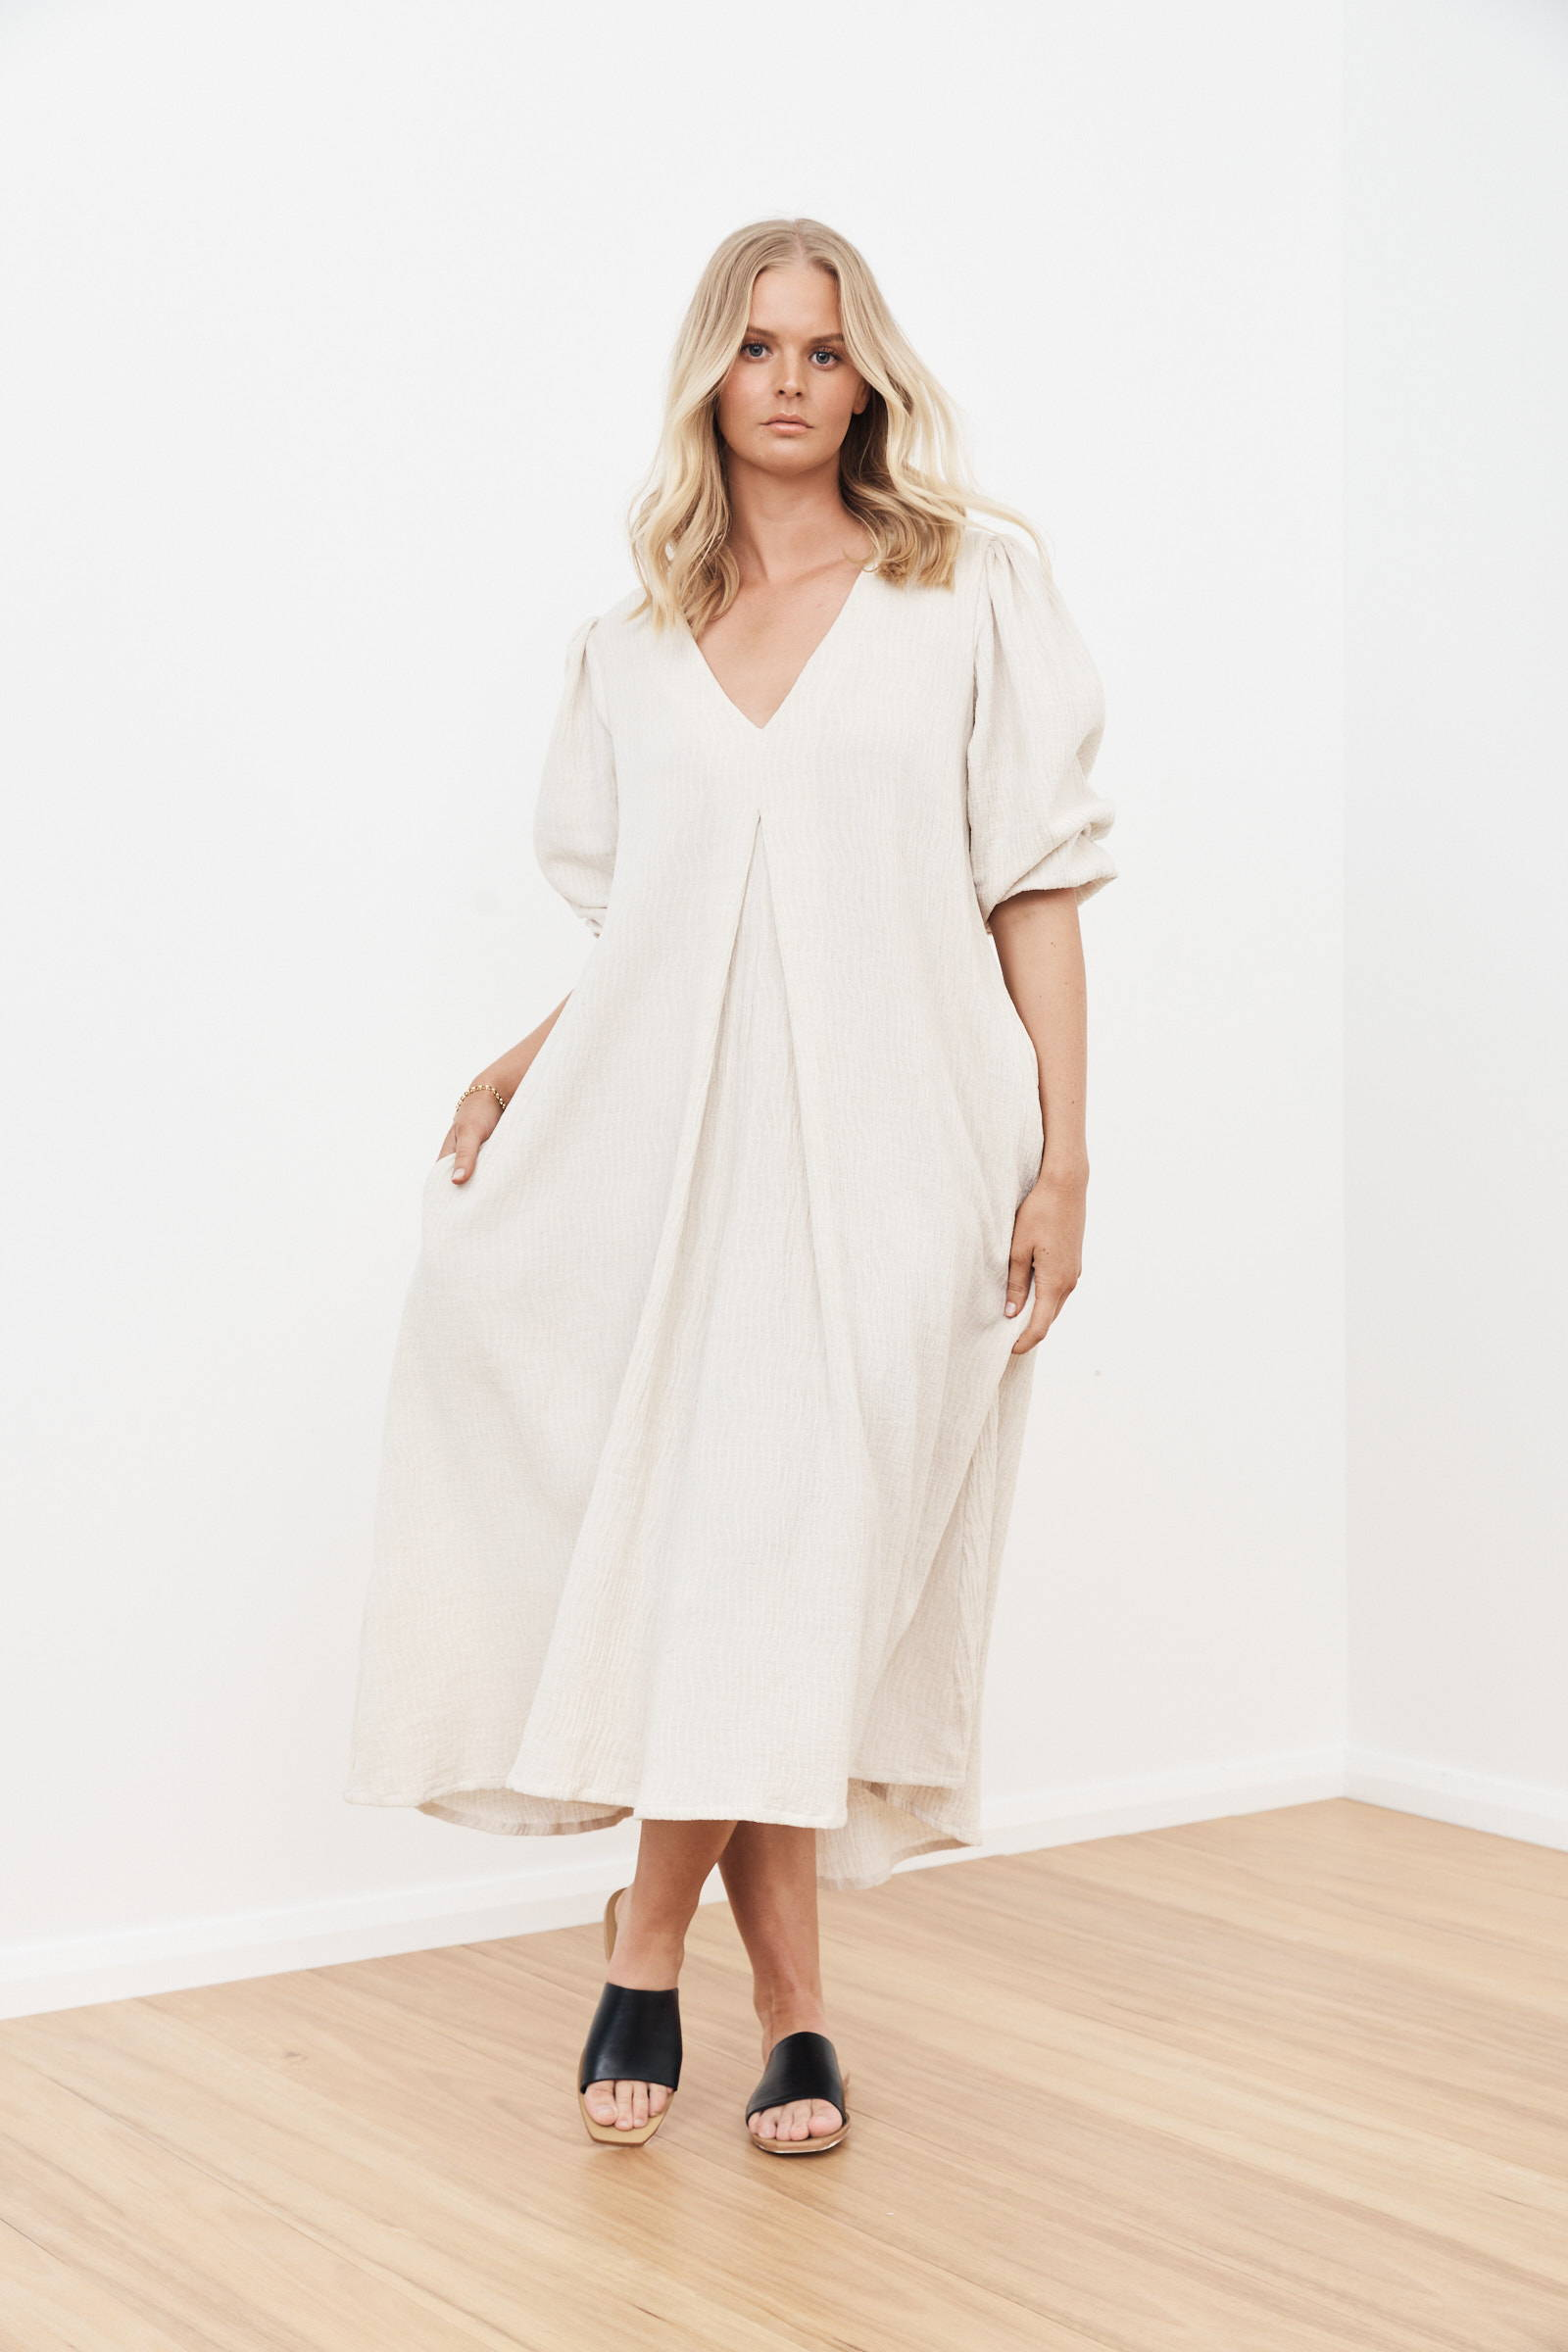 woman with shoulder length blonde hair not smiling wearing puff sleeve wide loose linen dress and black slide shoes